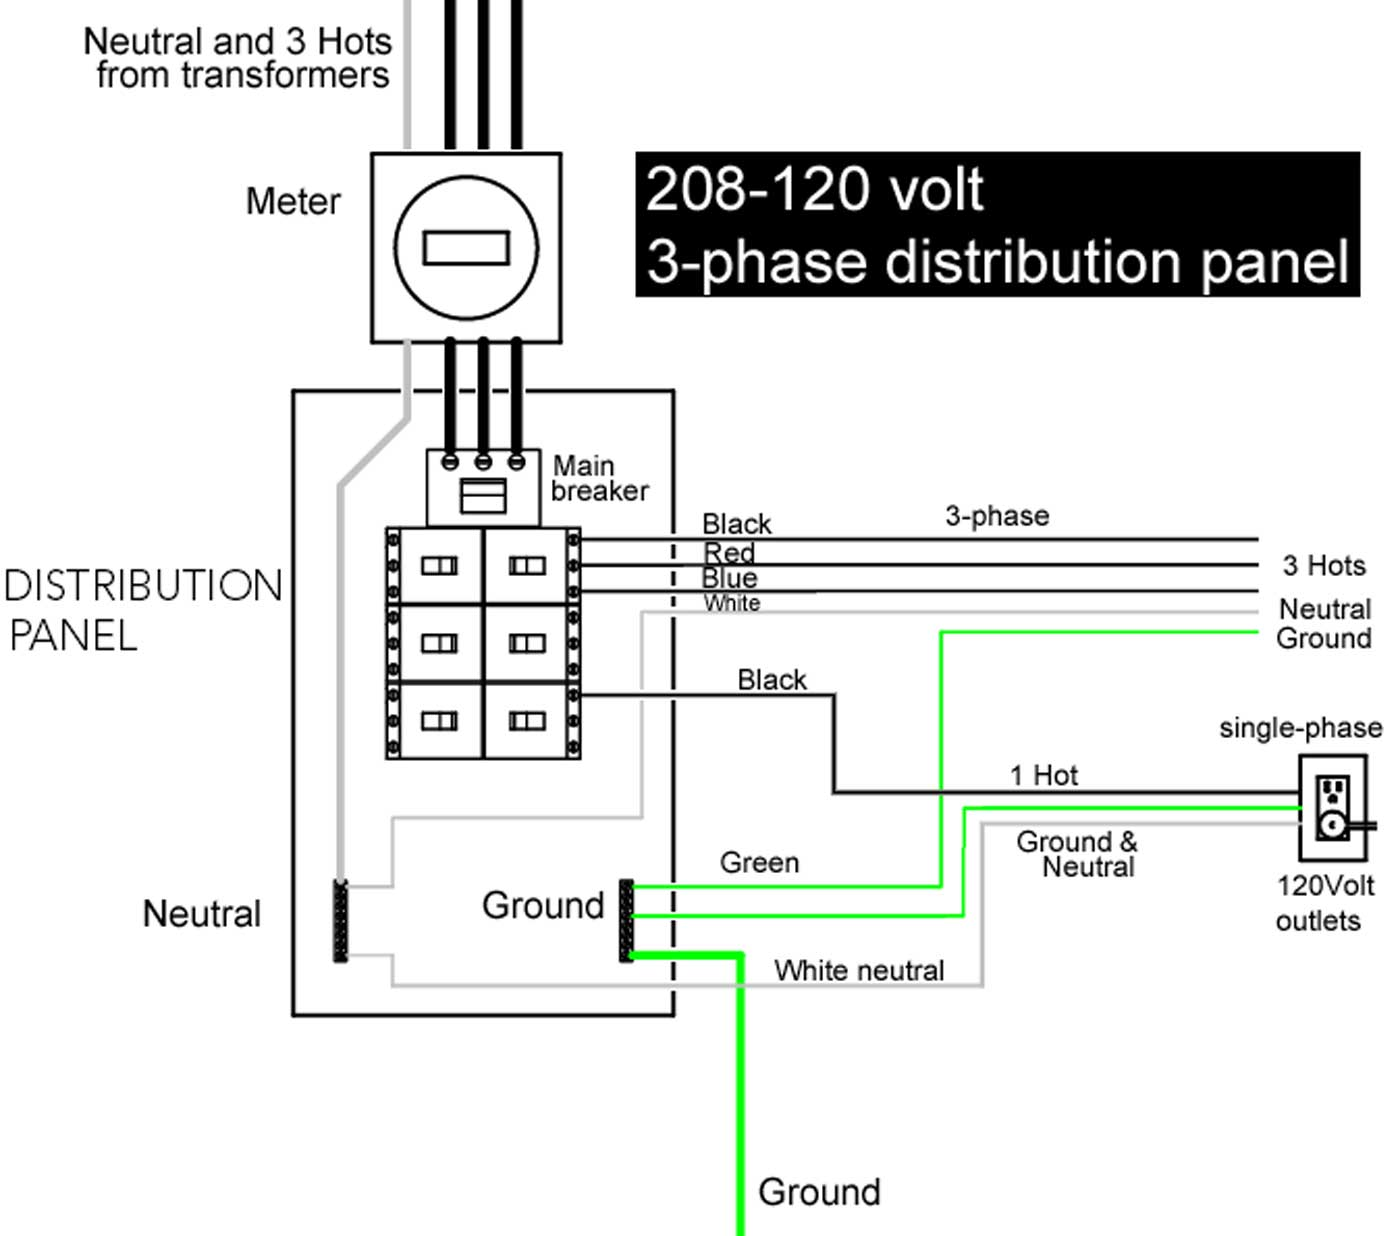 Larger image, Example 3-phase distribution panel with 208-120 volt service/  ground wire shown